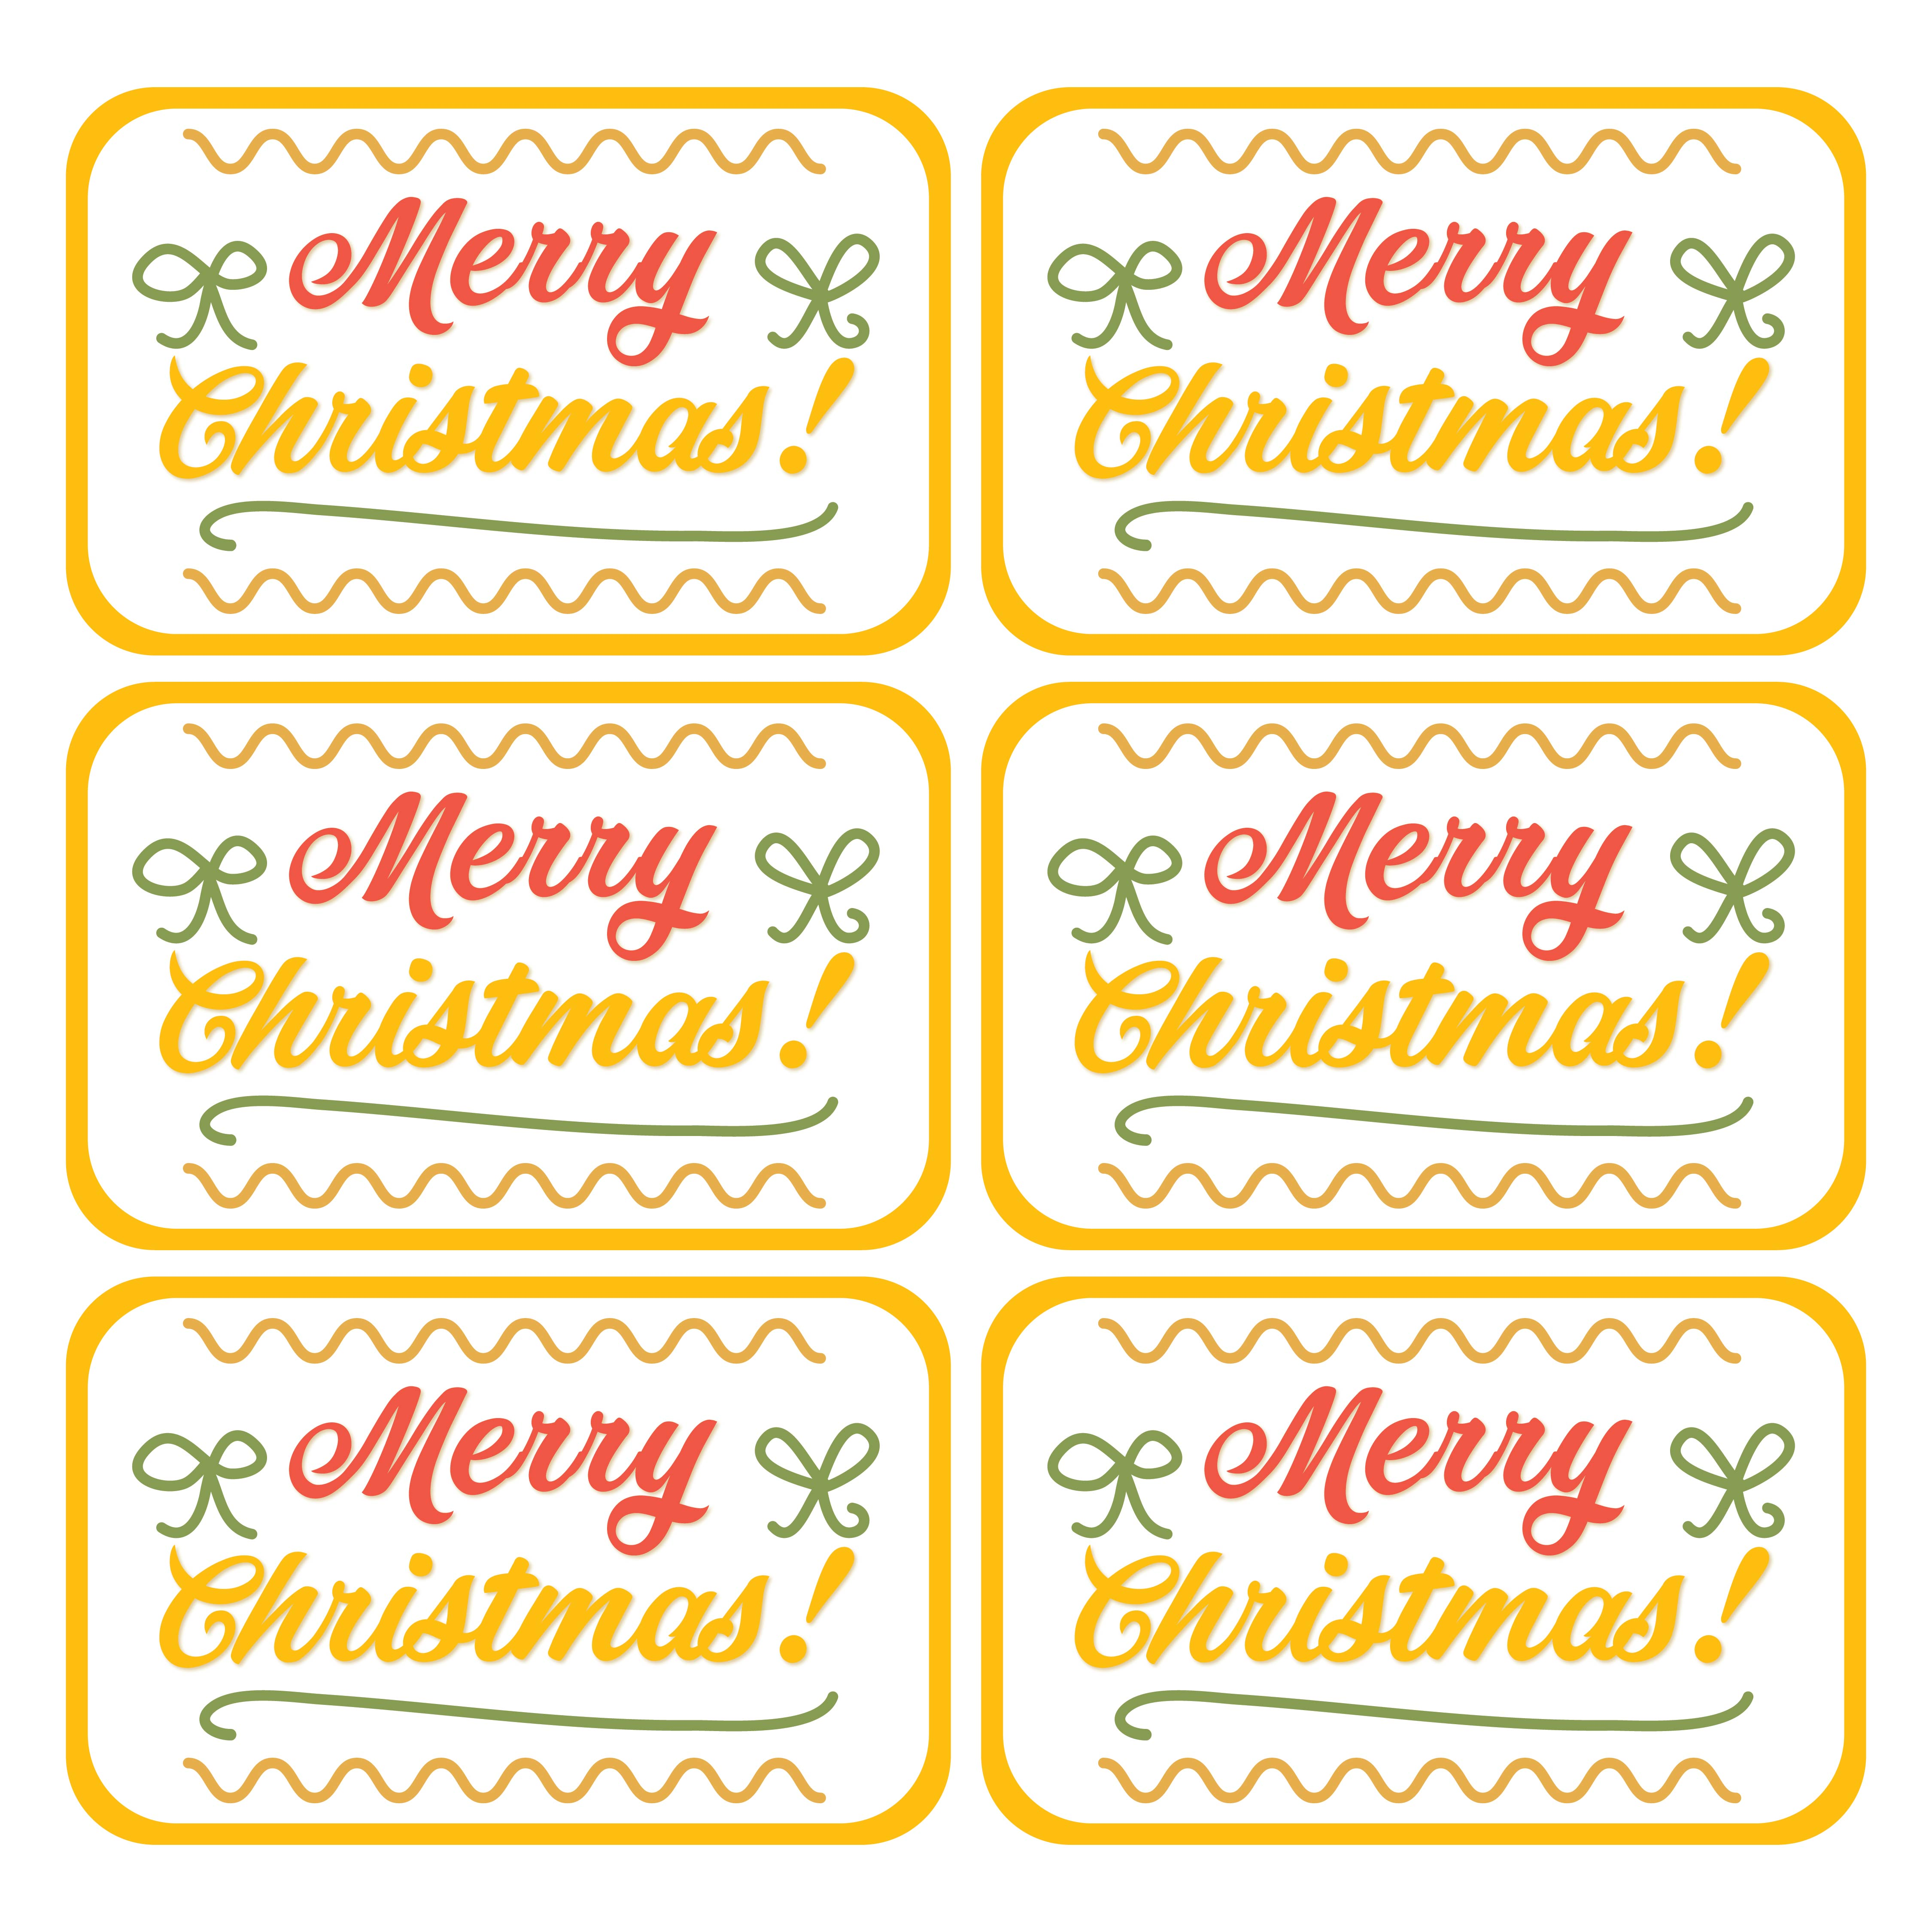 6 Images of Free Printable Christmas Gift Tags PDF